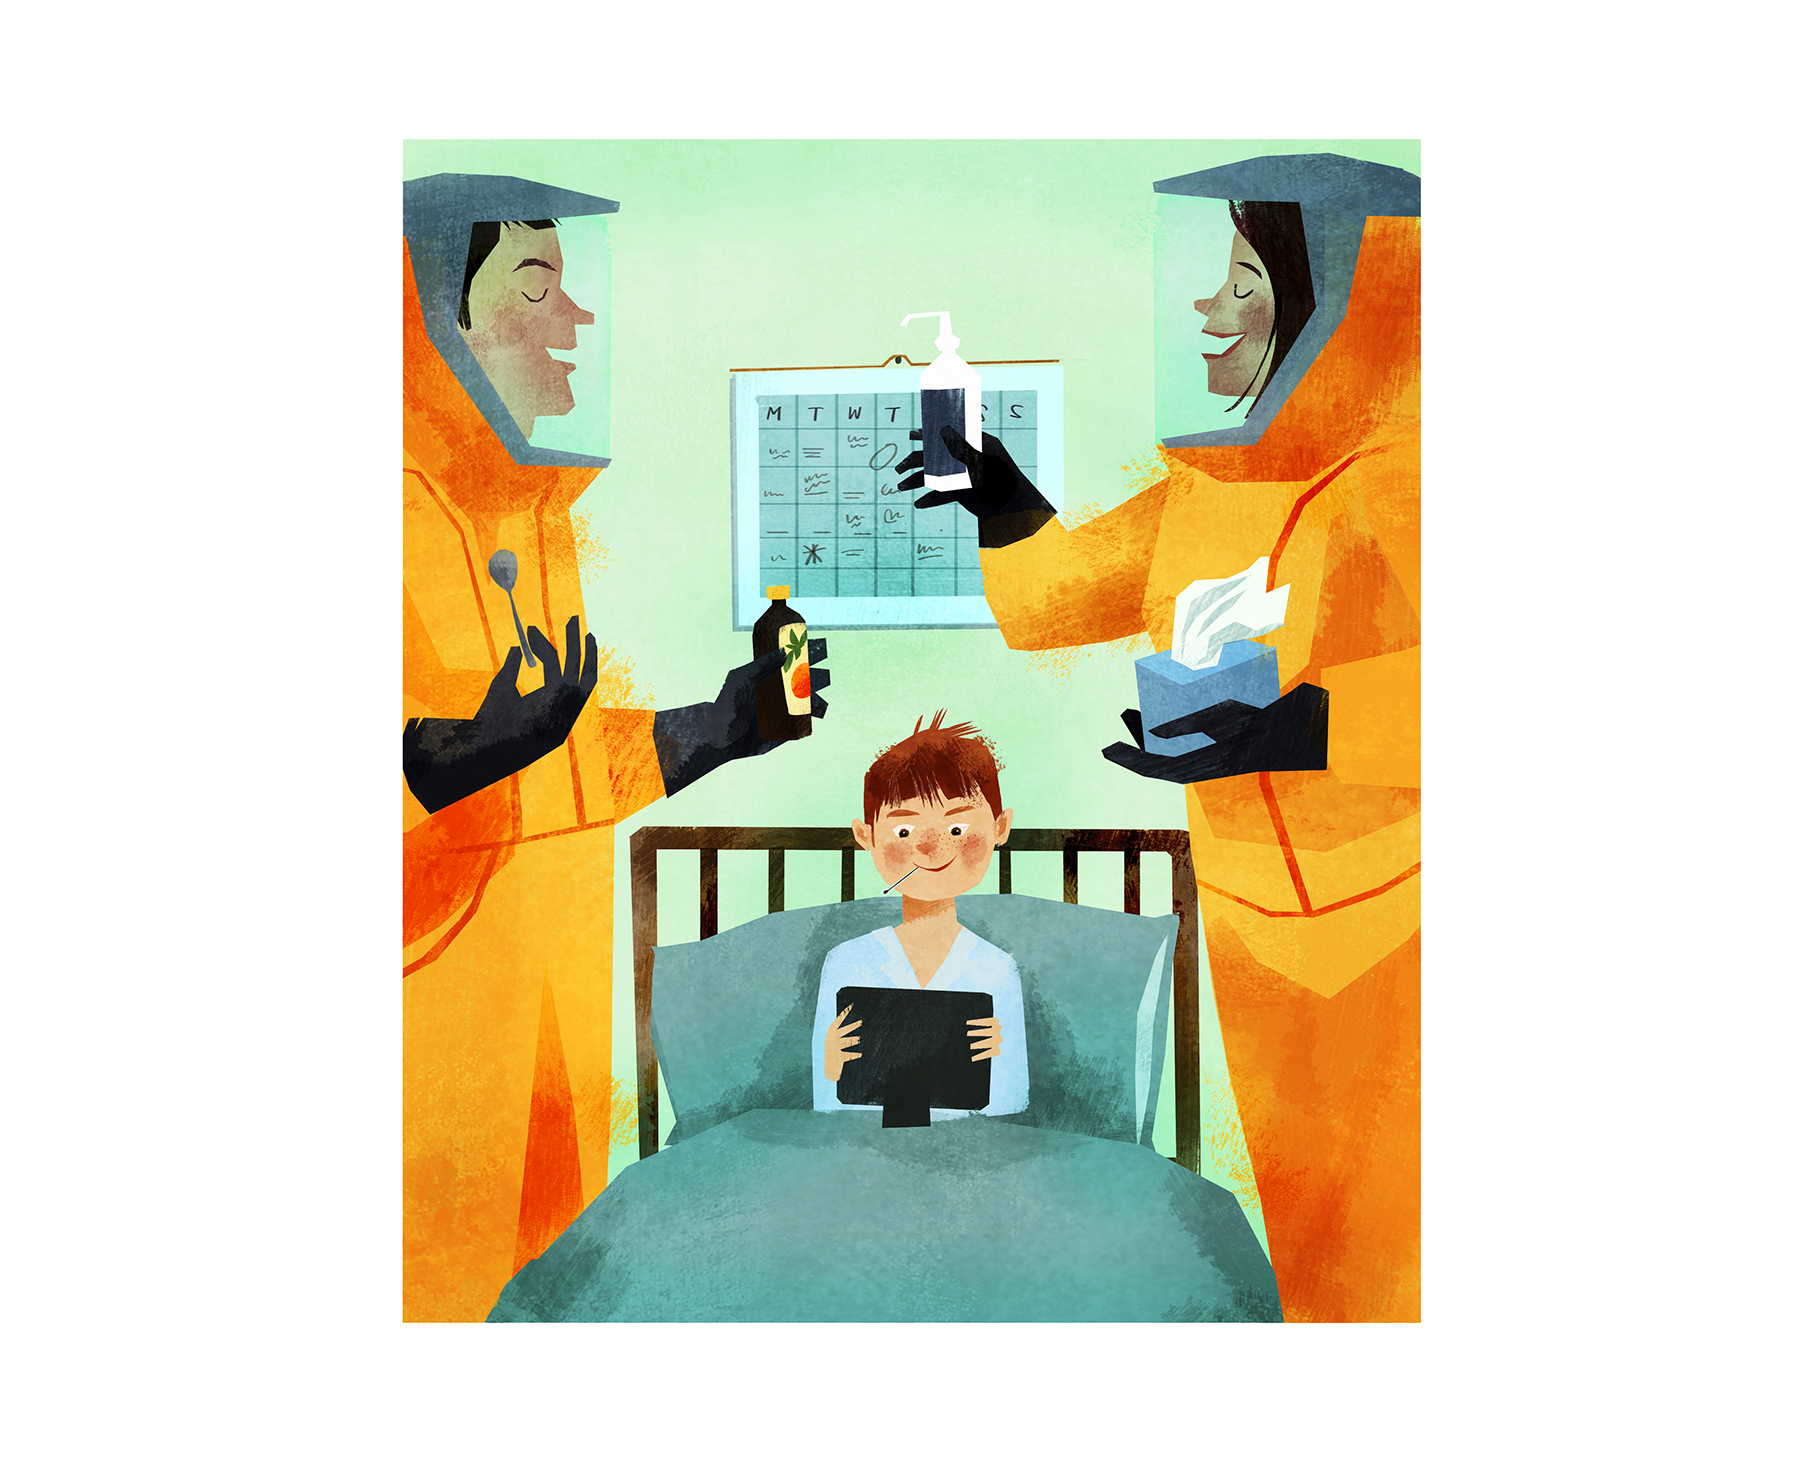 Illustration: Sick kid in bed with iPad, parents in hazmat suits taking care of him